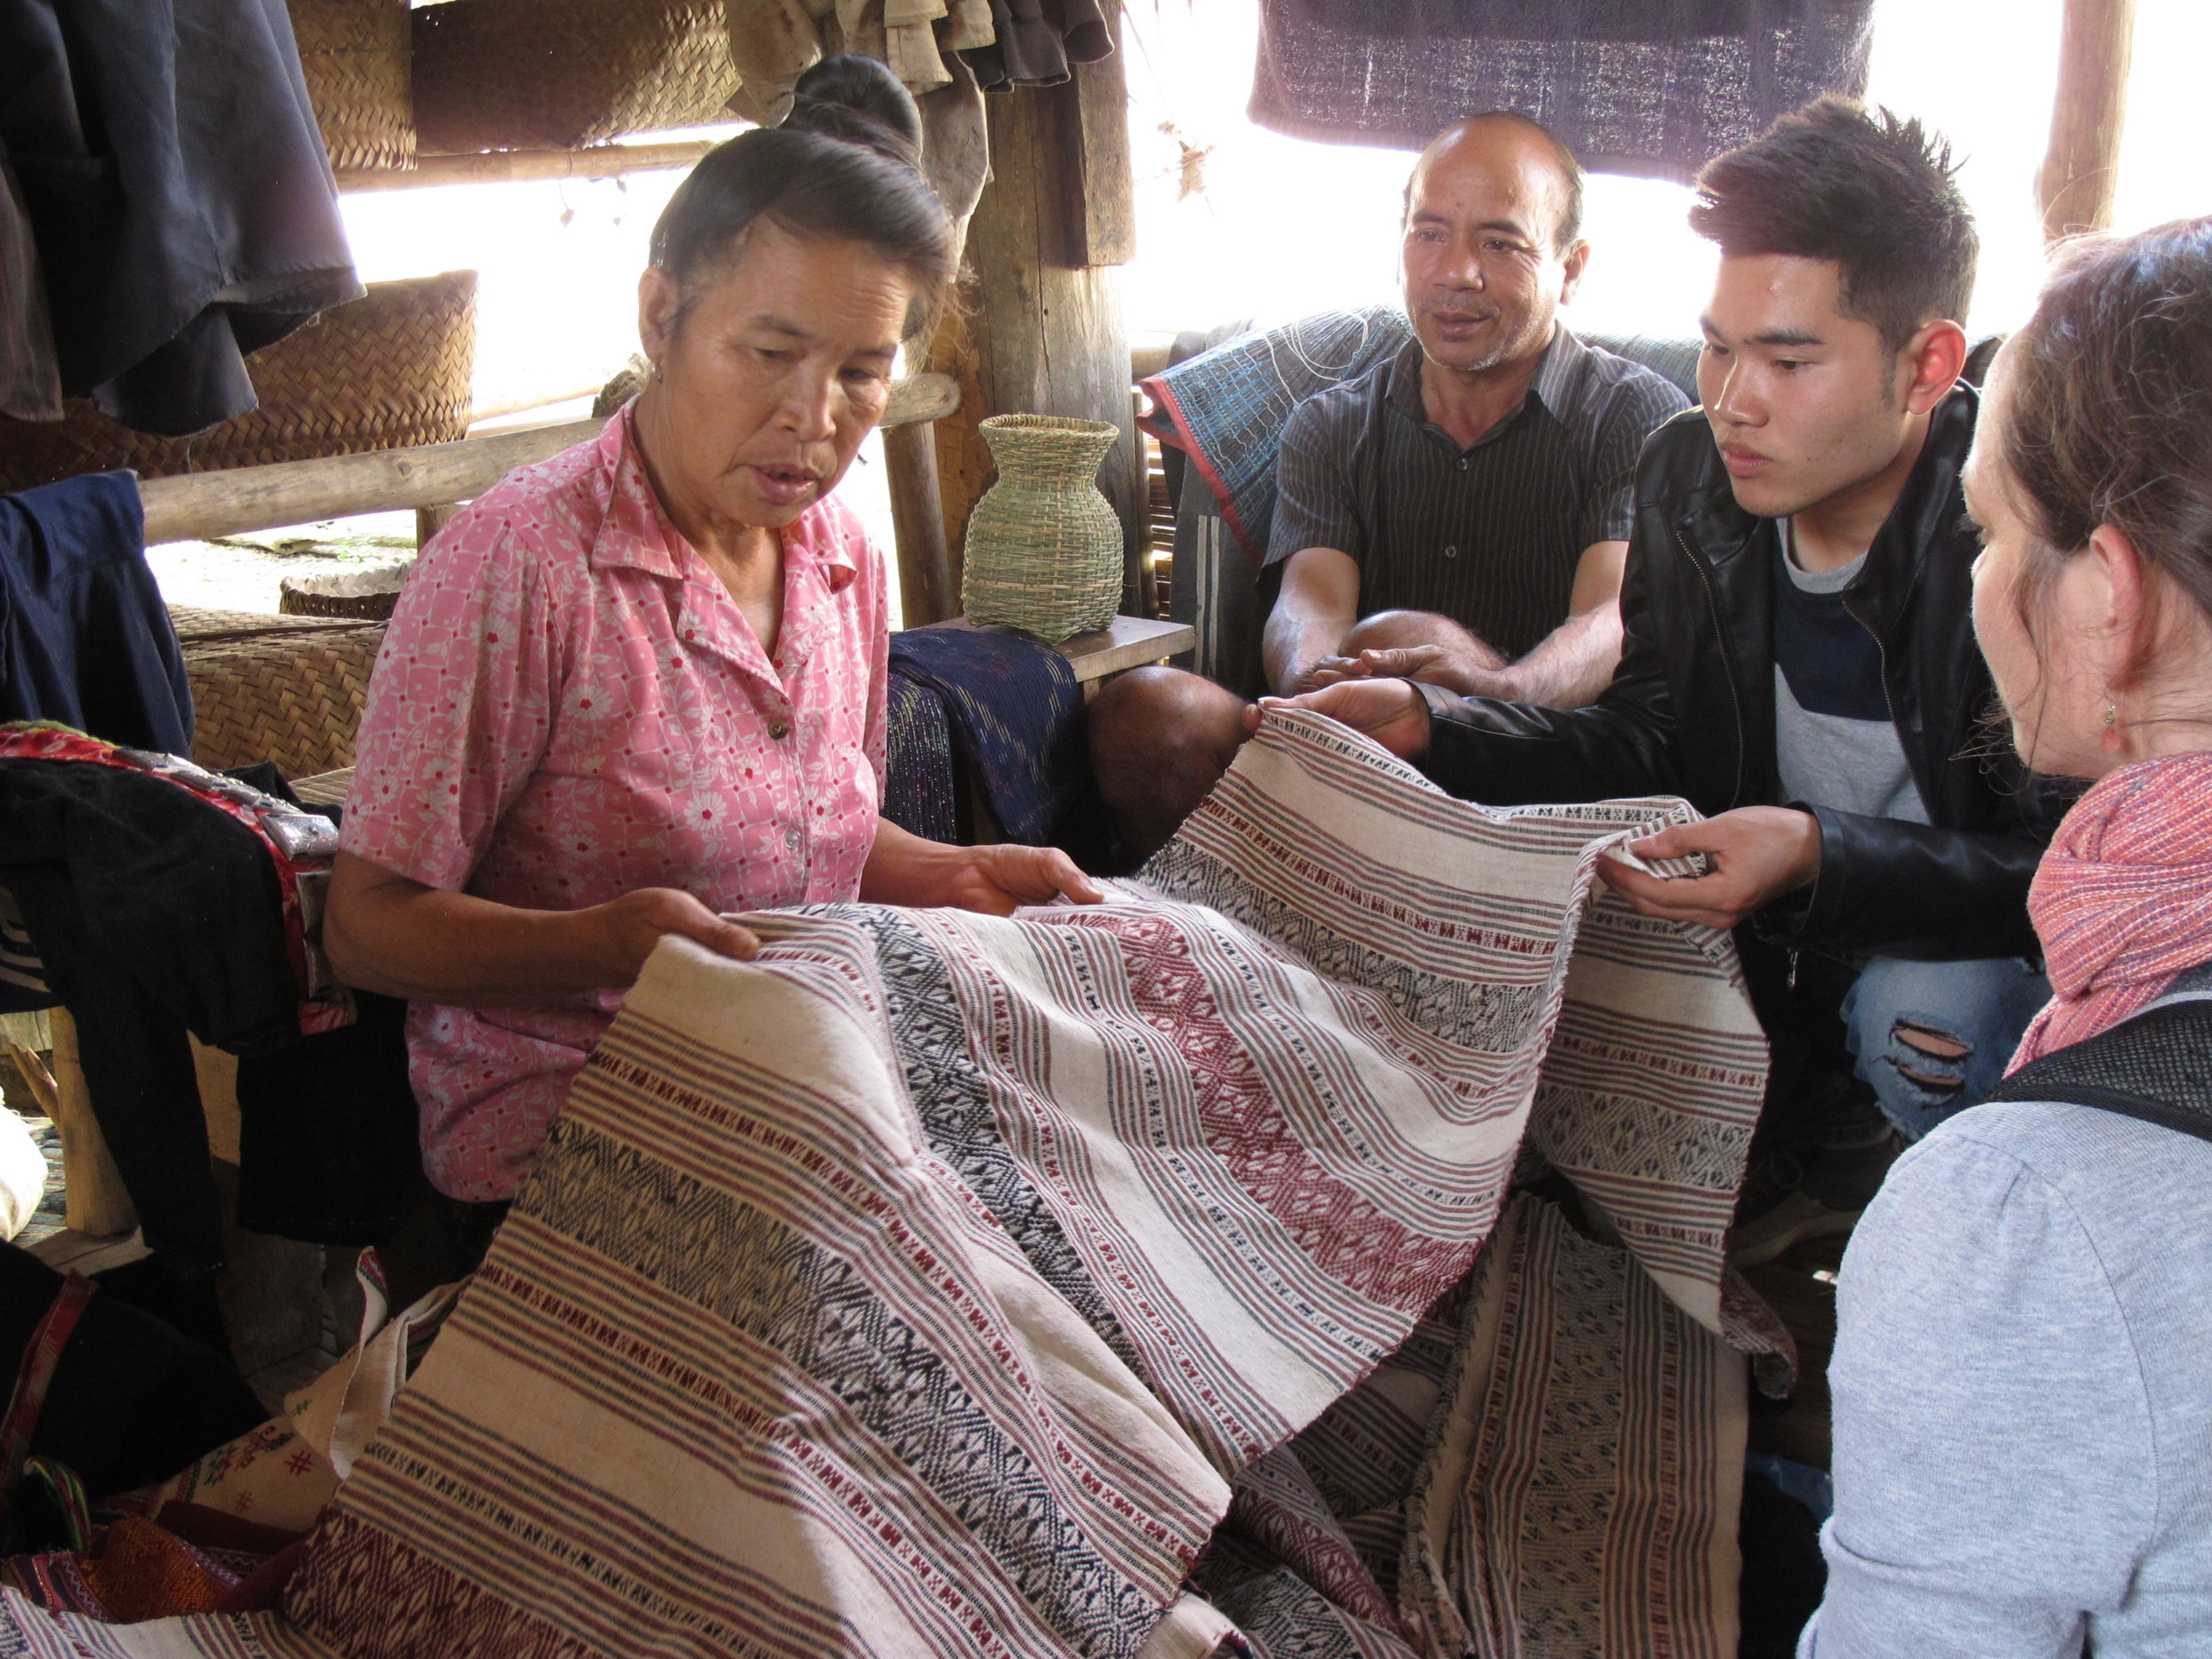 Padee showing us her hand woven textiles, with her husband, Sin, and me looking on